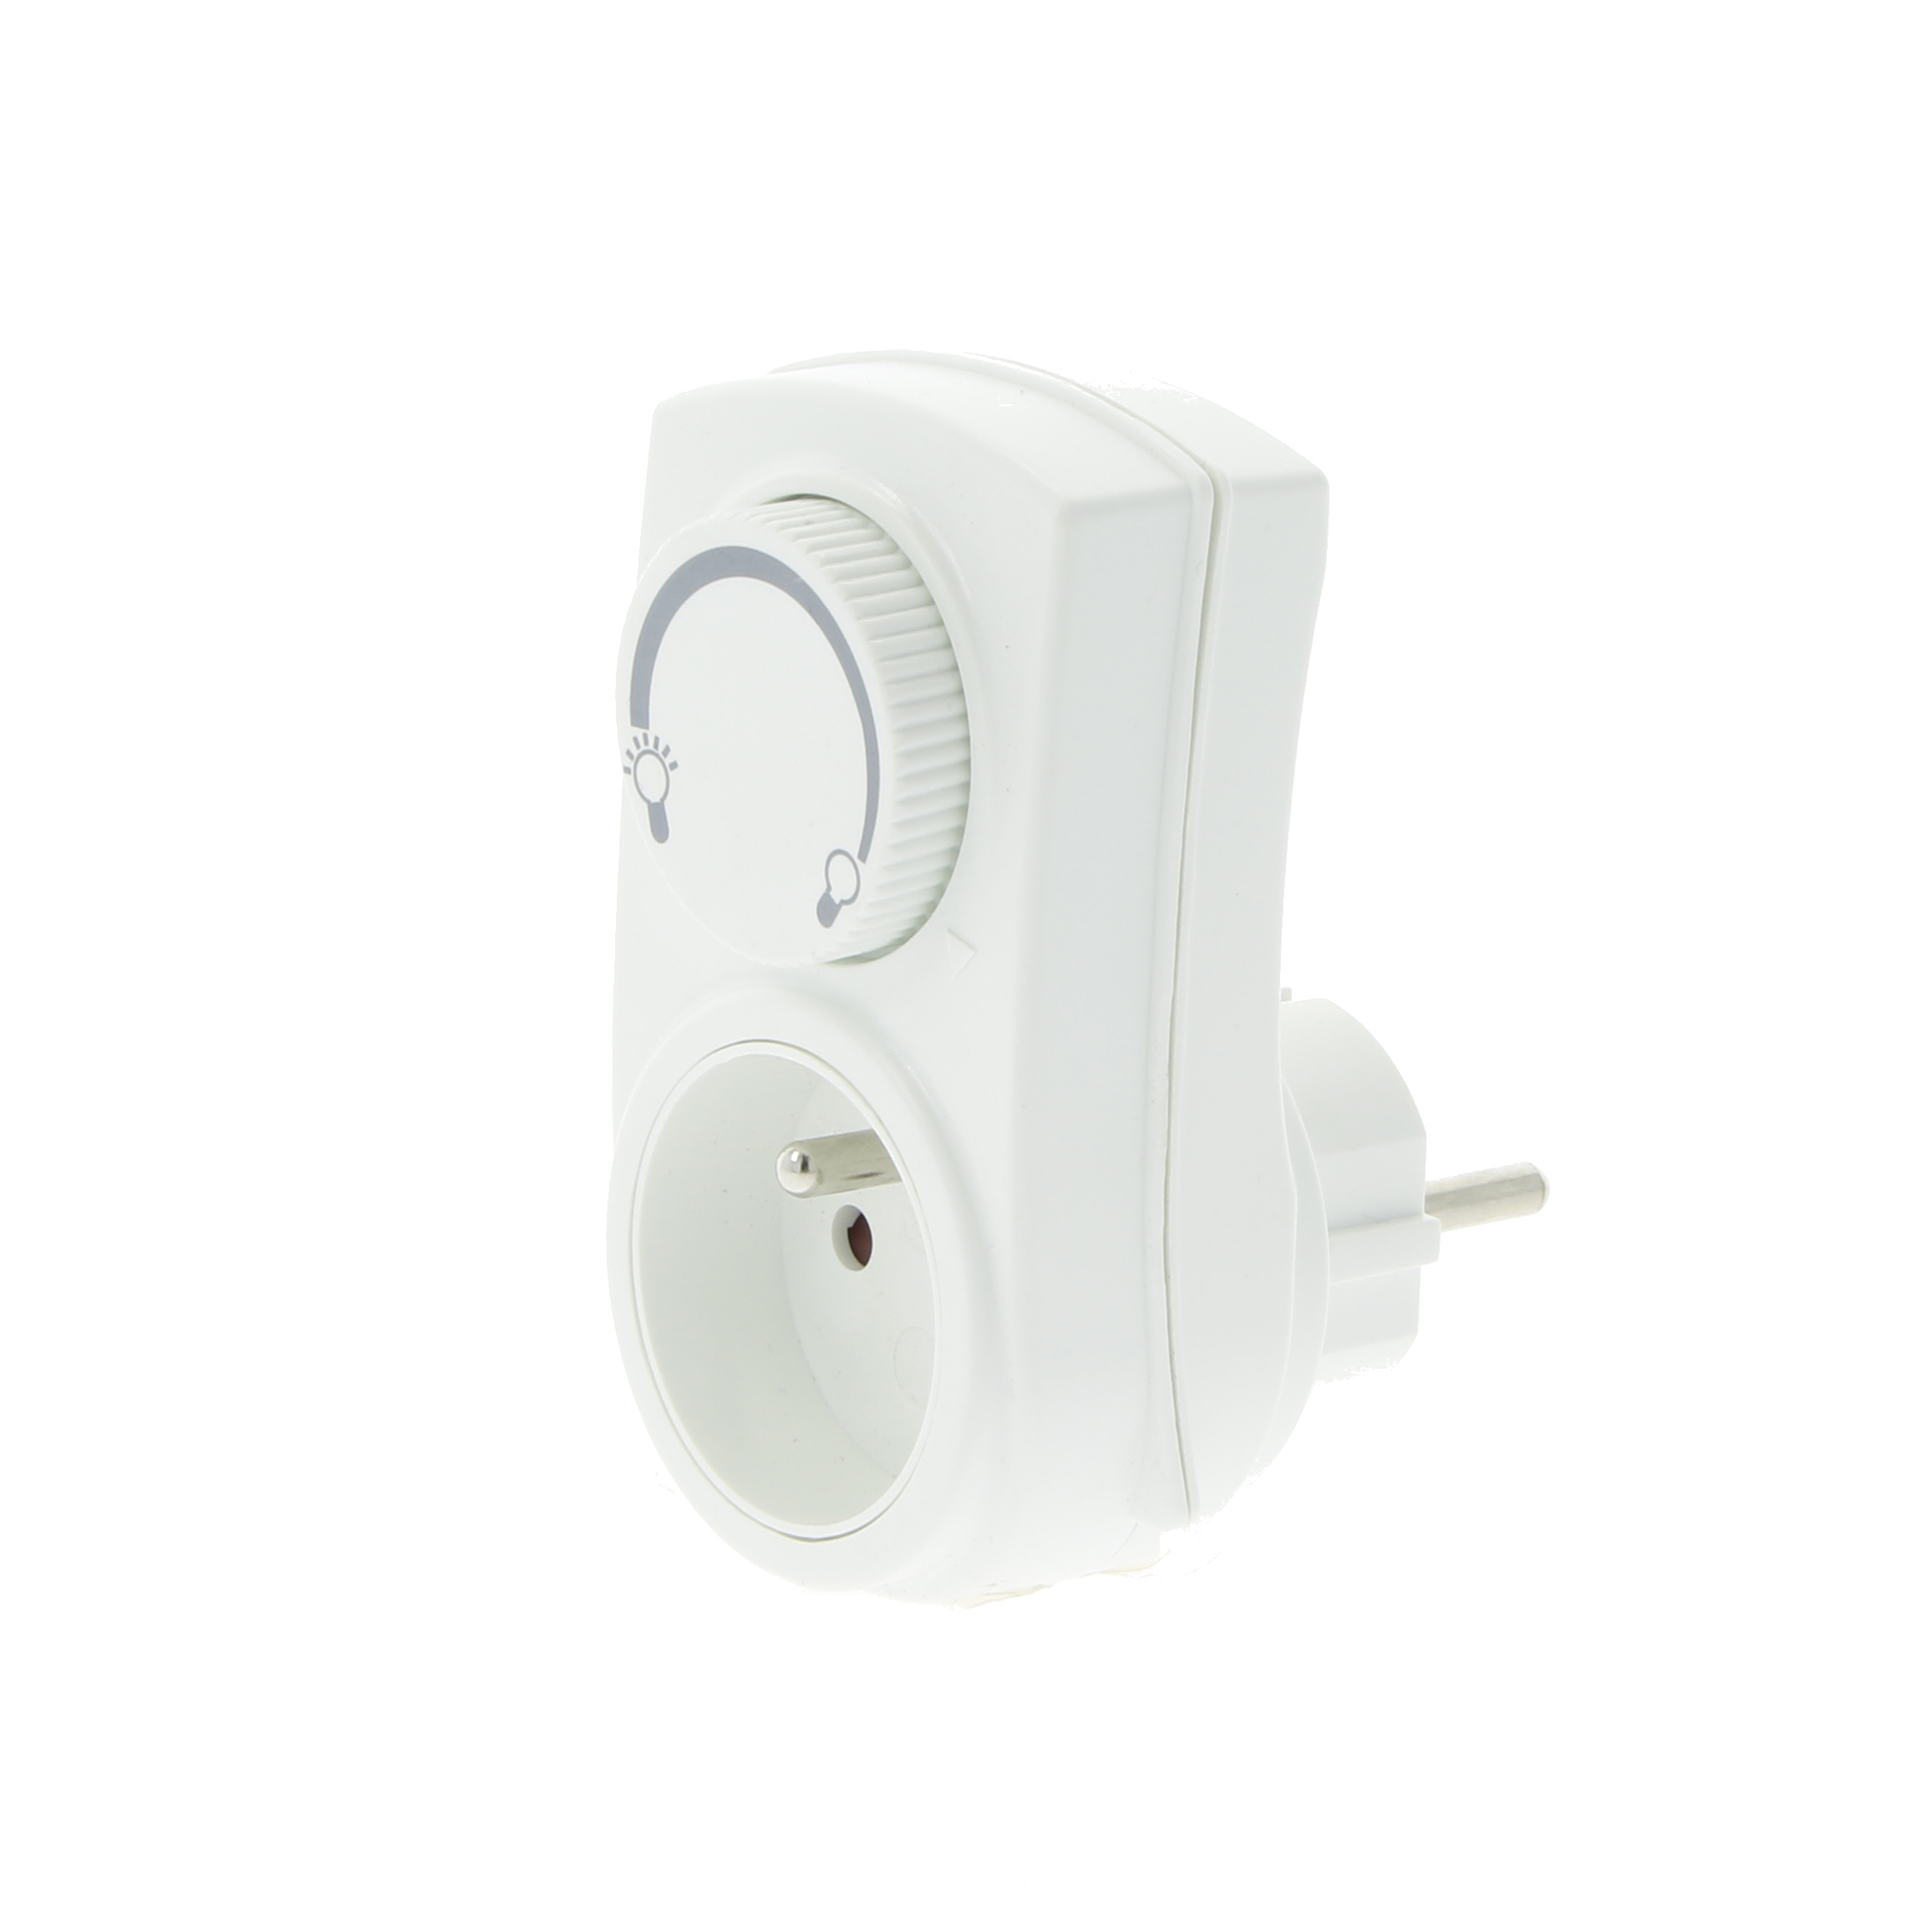 Switch with dimmer 300W white